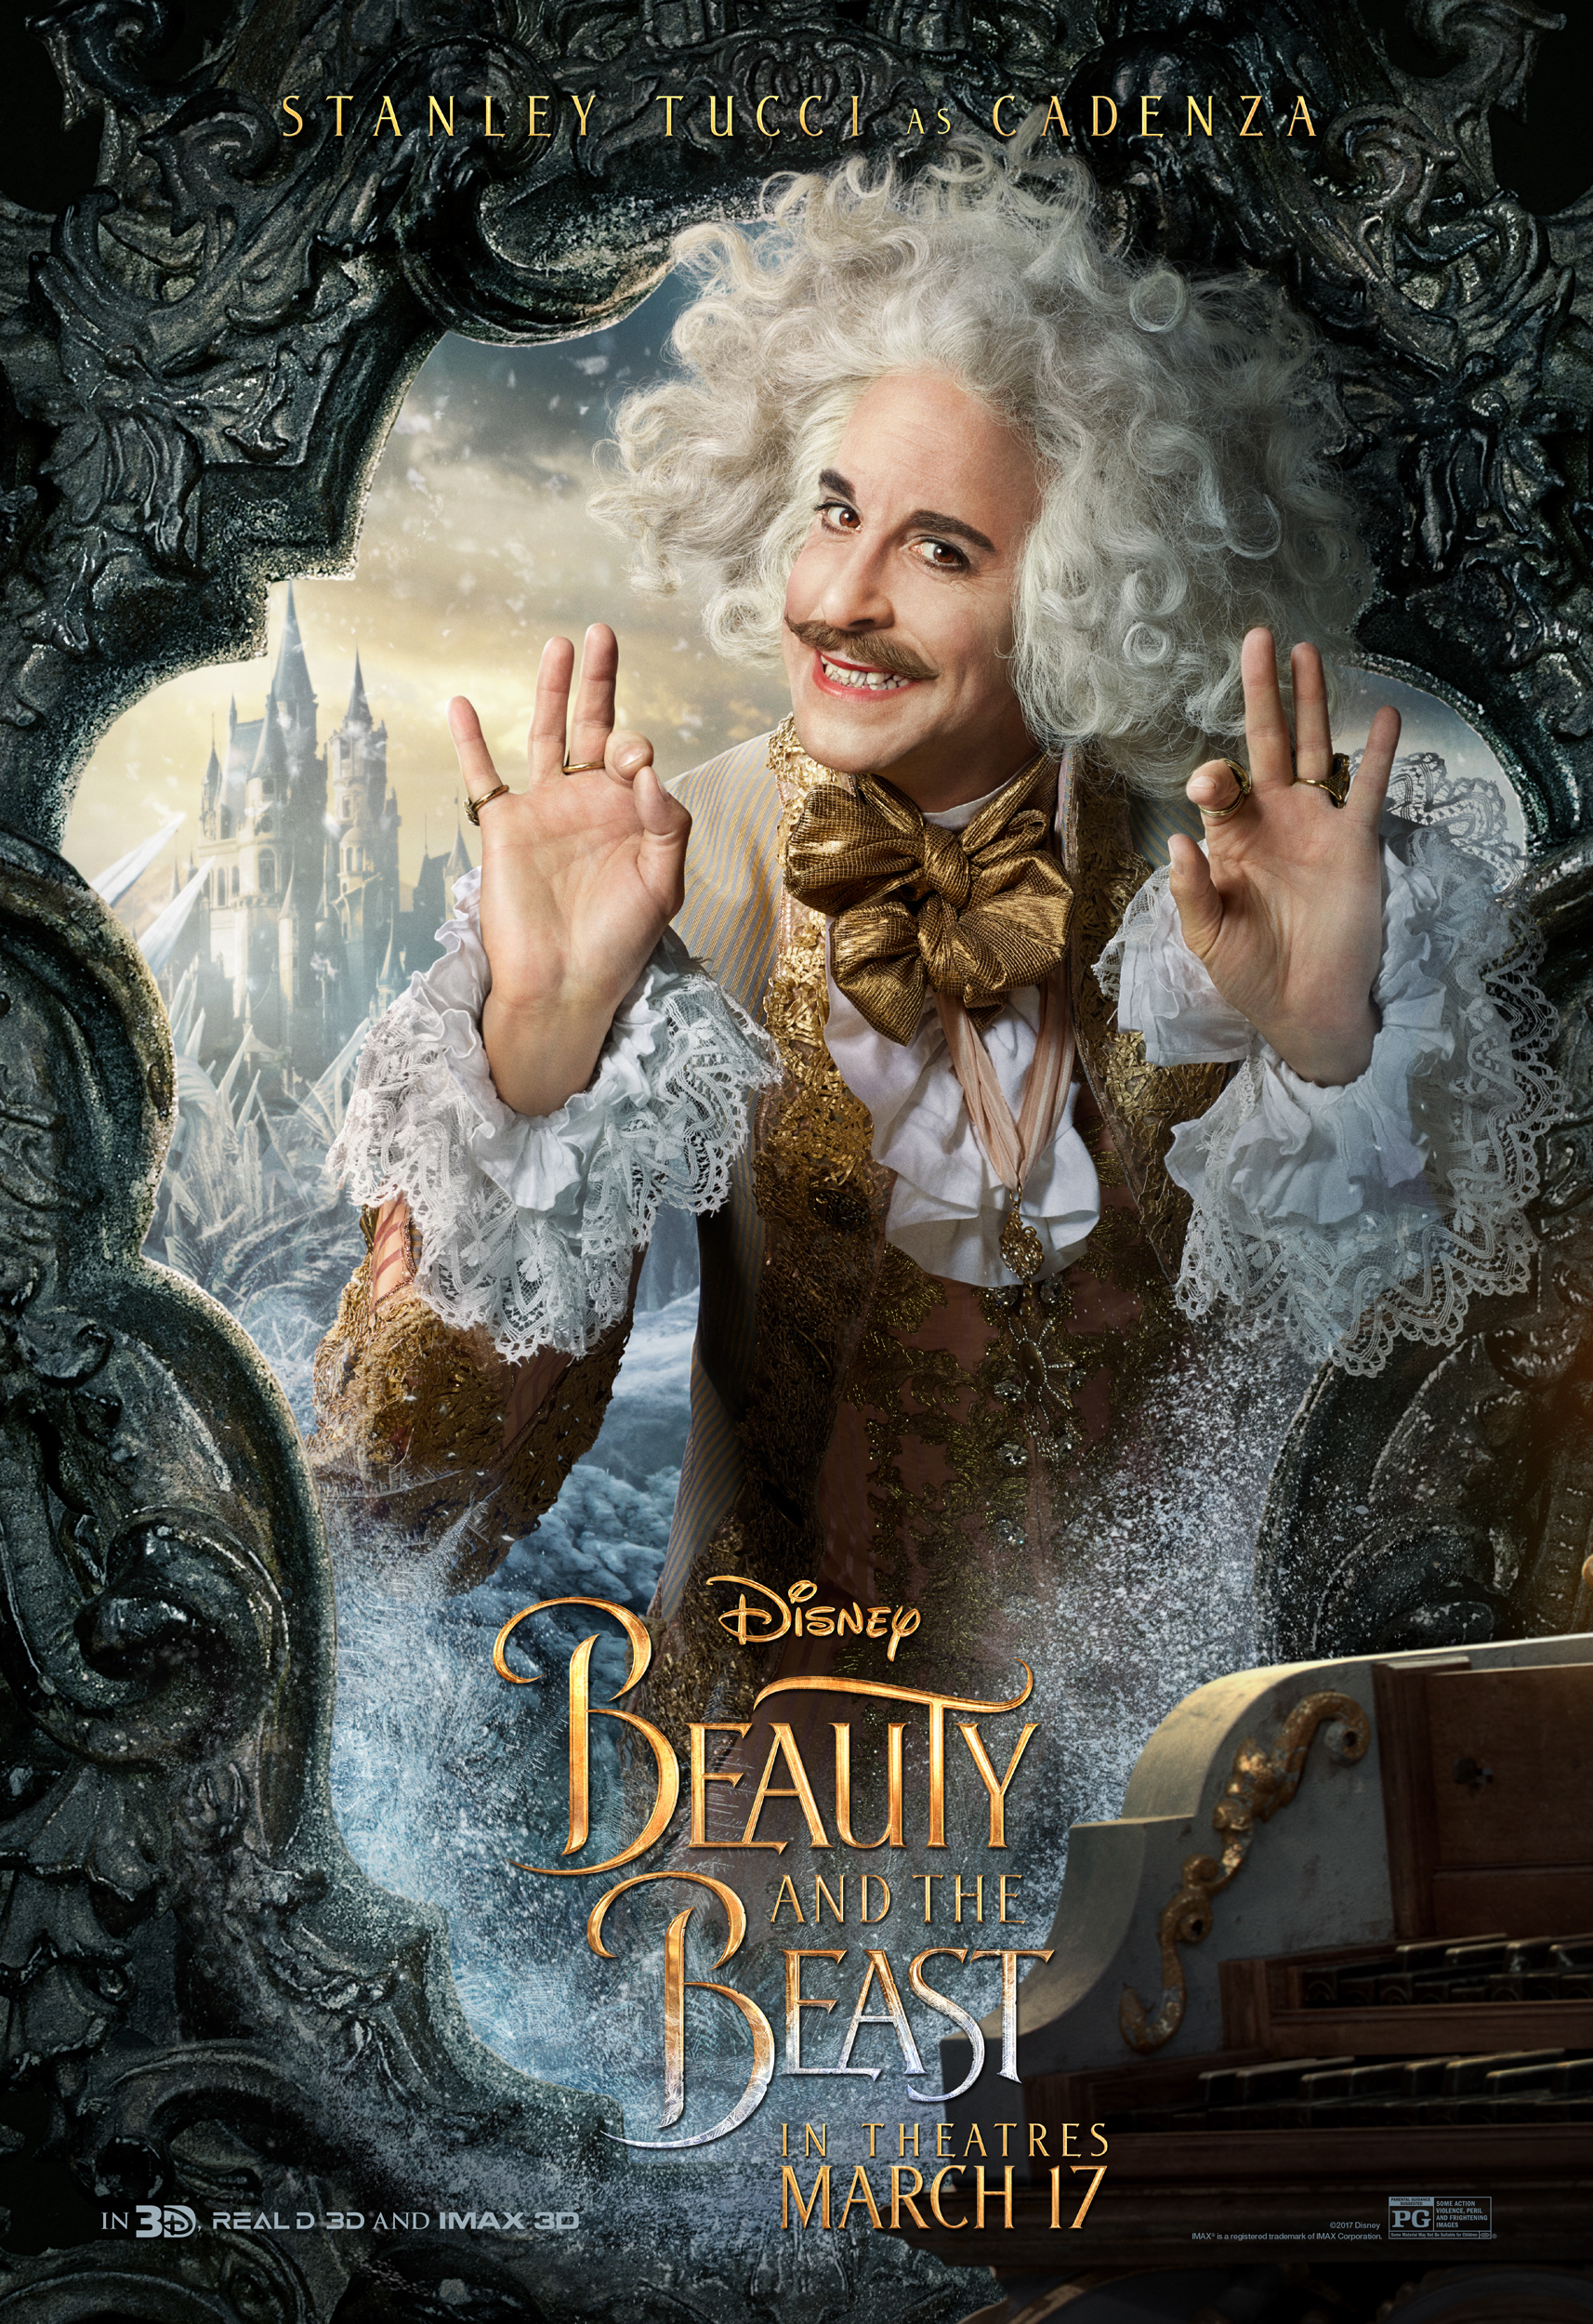 Disneys Beauty And The Beast Is A Live Action Re Telling Of Studios Animated Classic Which Refashions Characters From Tale As Old